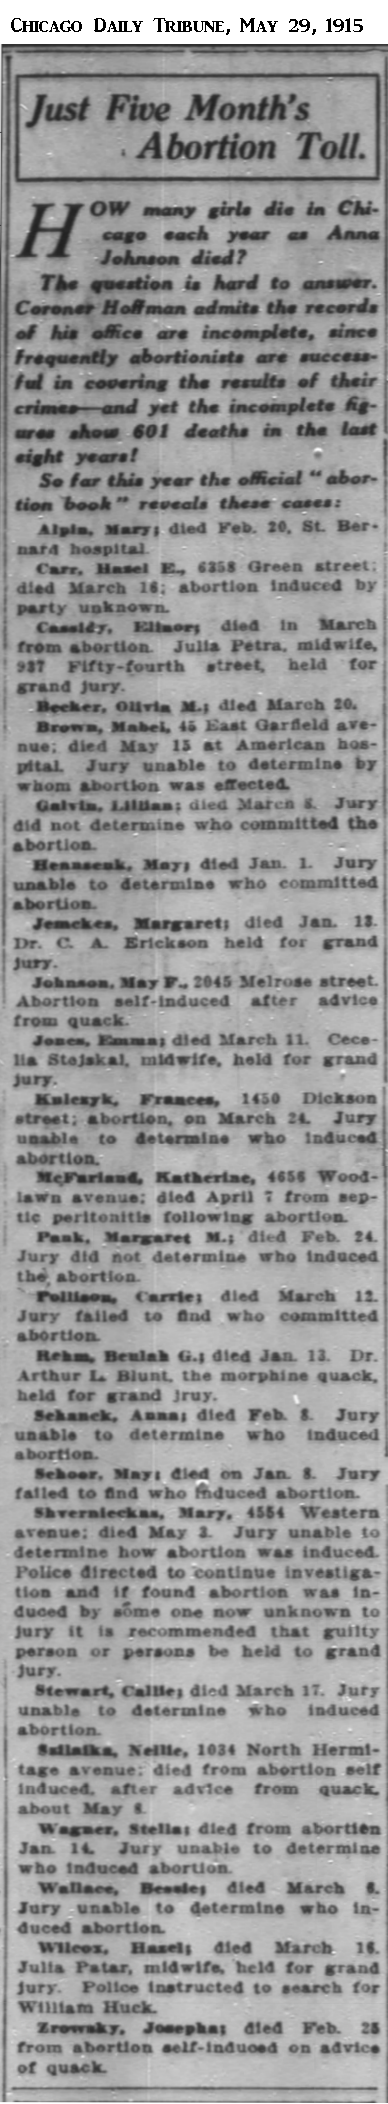 ChicagoAbortionDeathsChiDailyTrib29May1915.png